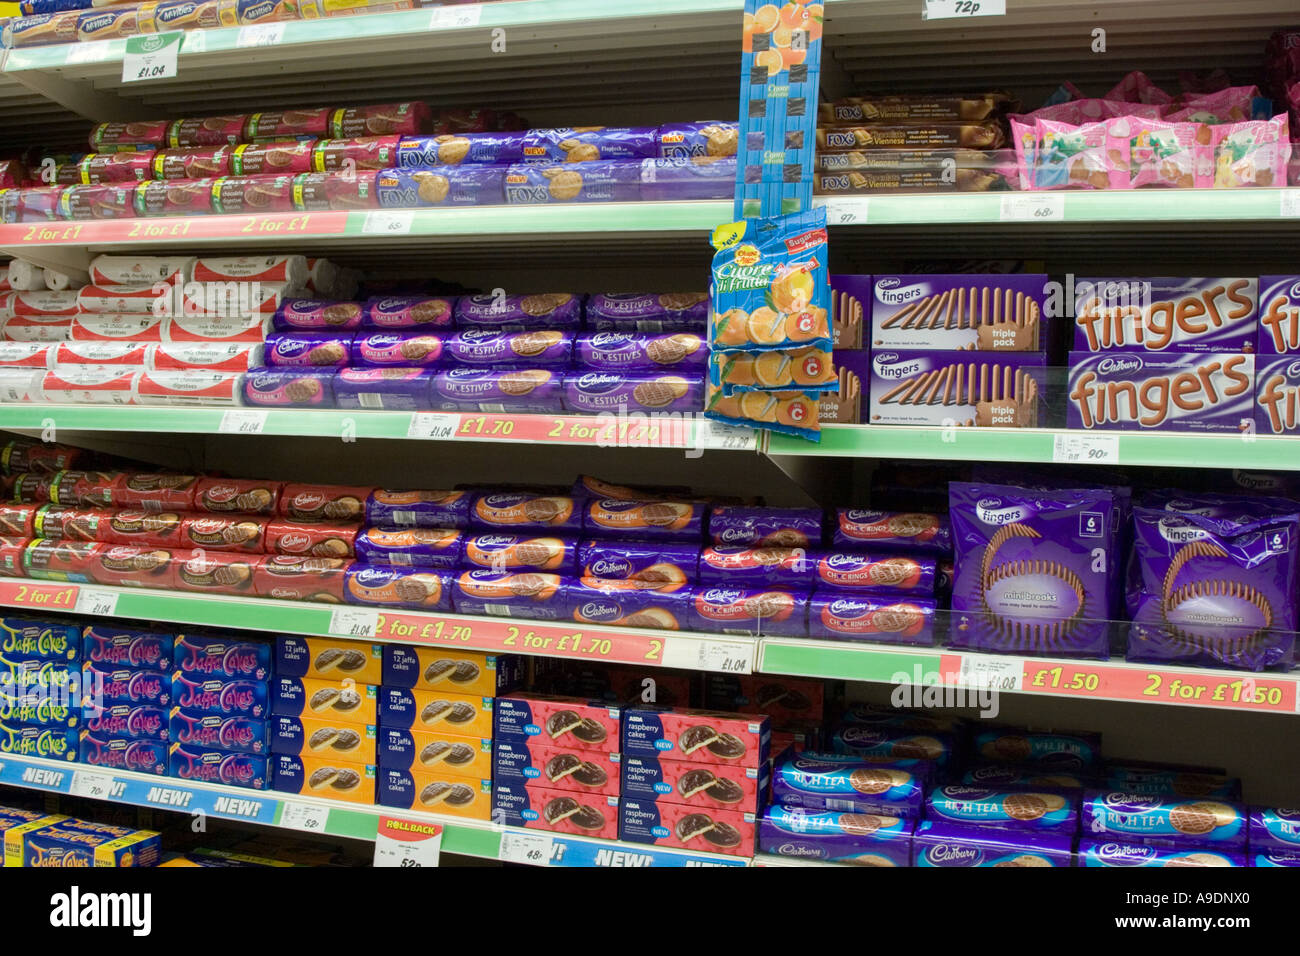 Chocolate Biscuits Stacked On Supermarket Shelves Stock Photo